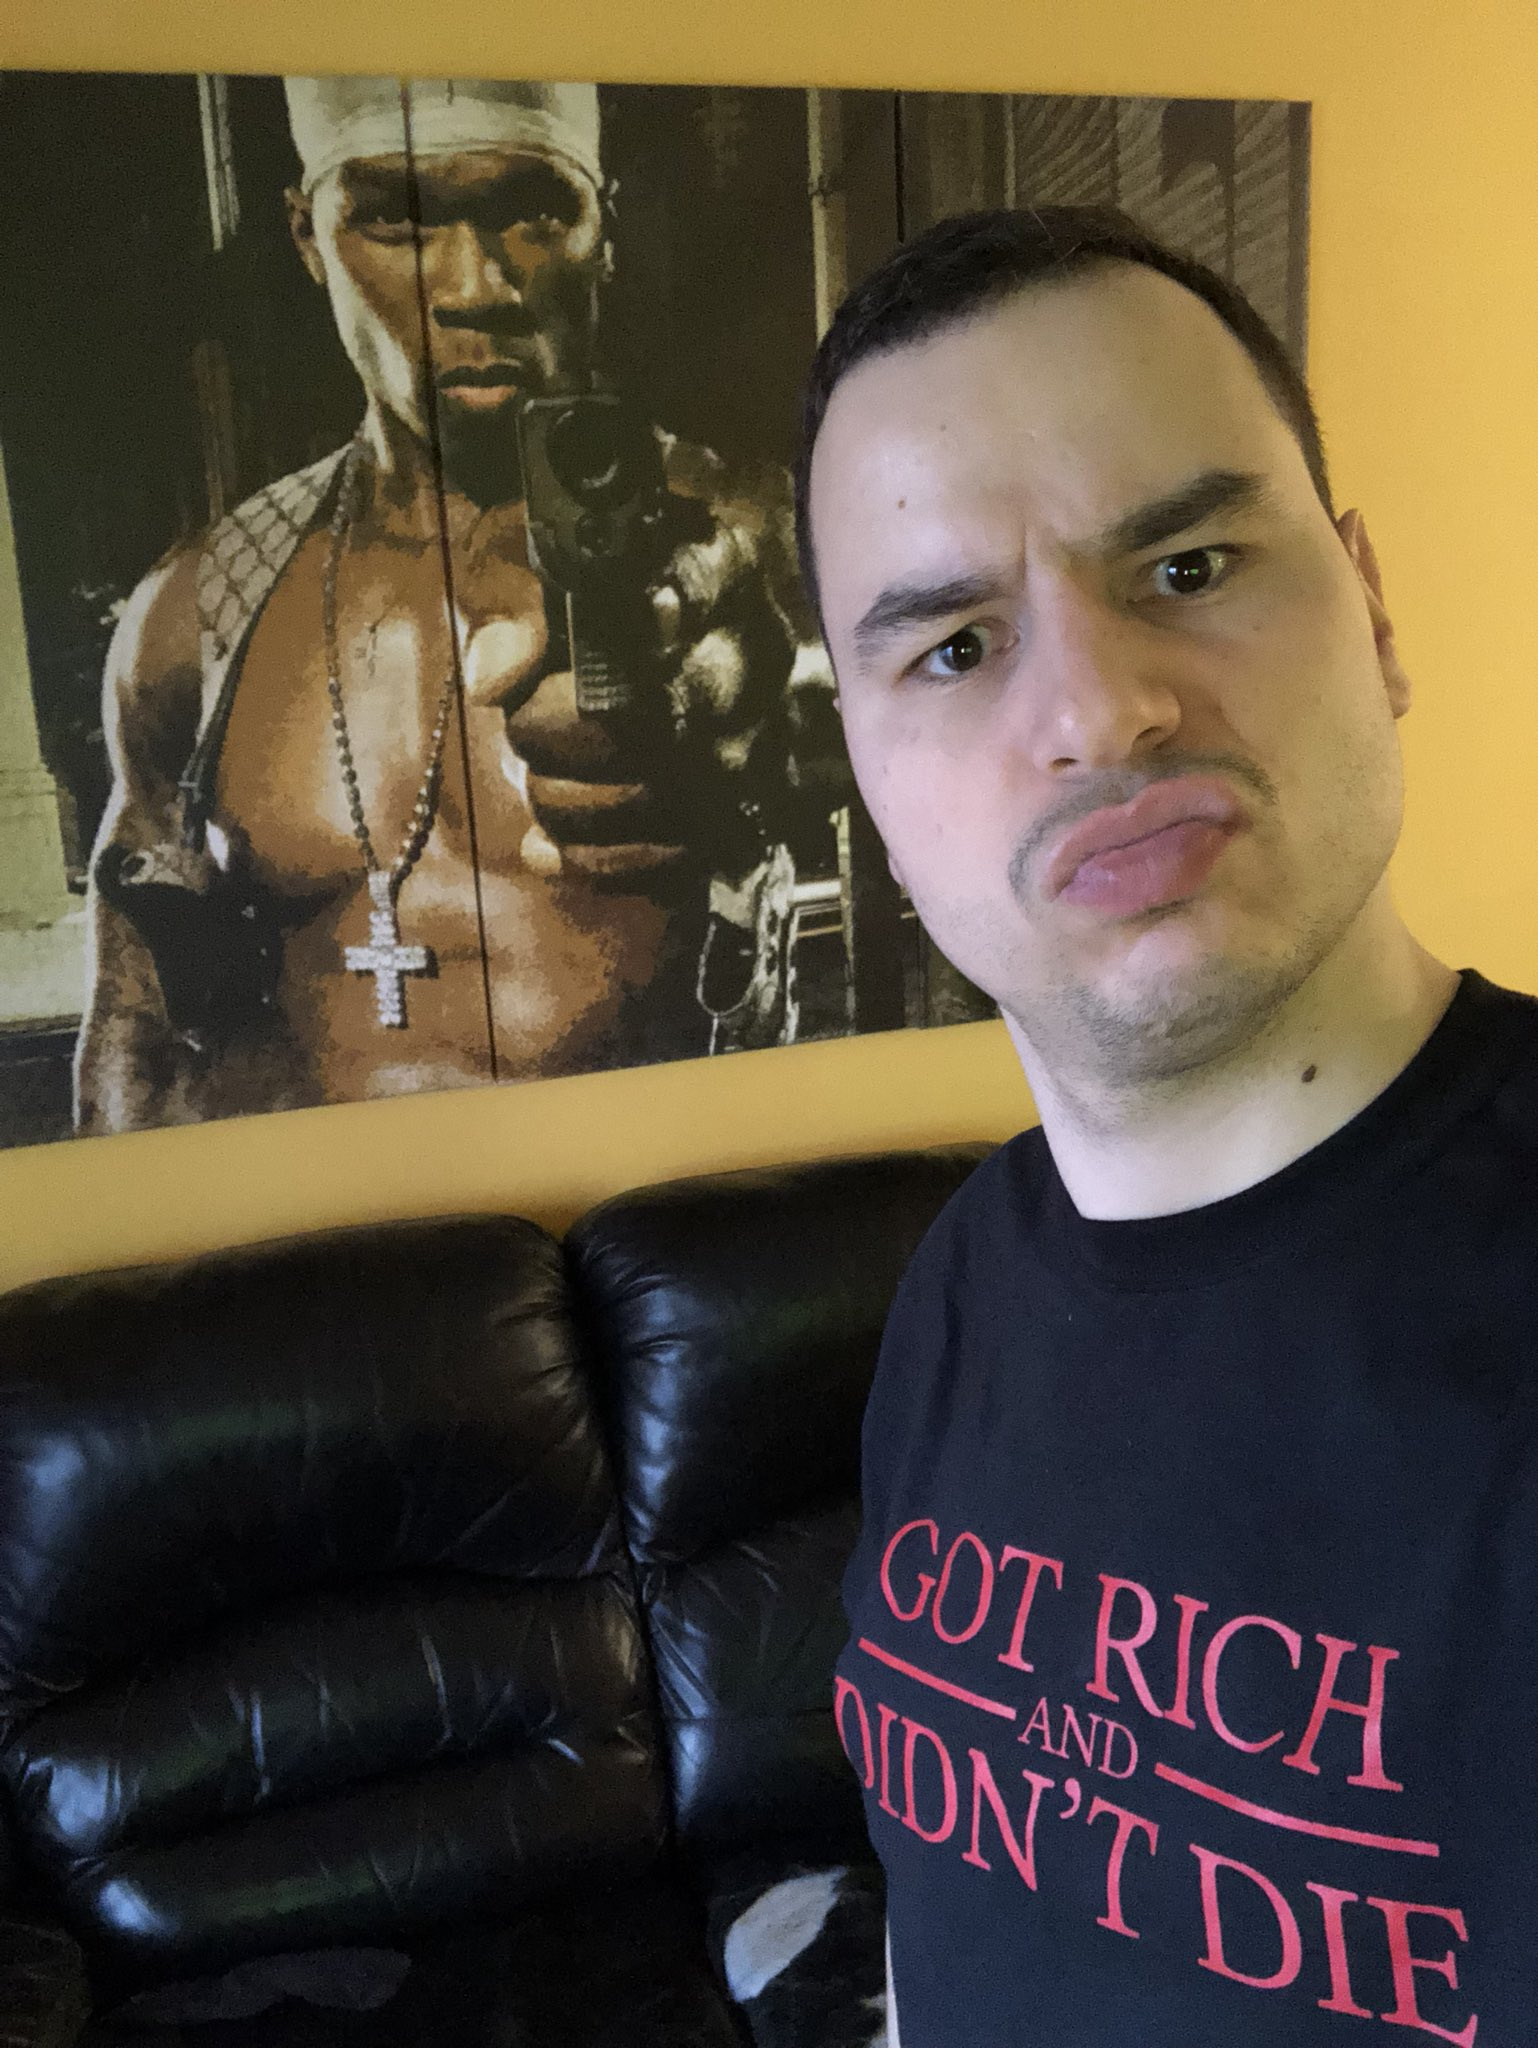 Celebrating @50cent Get rich or die trying album release 15 yrs ago with the Got rich and didn't die t-shirt! https://t.co/At88Fzbdrd